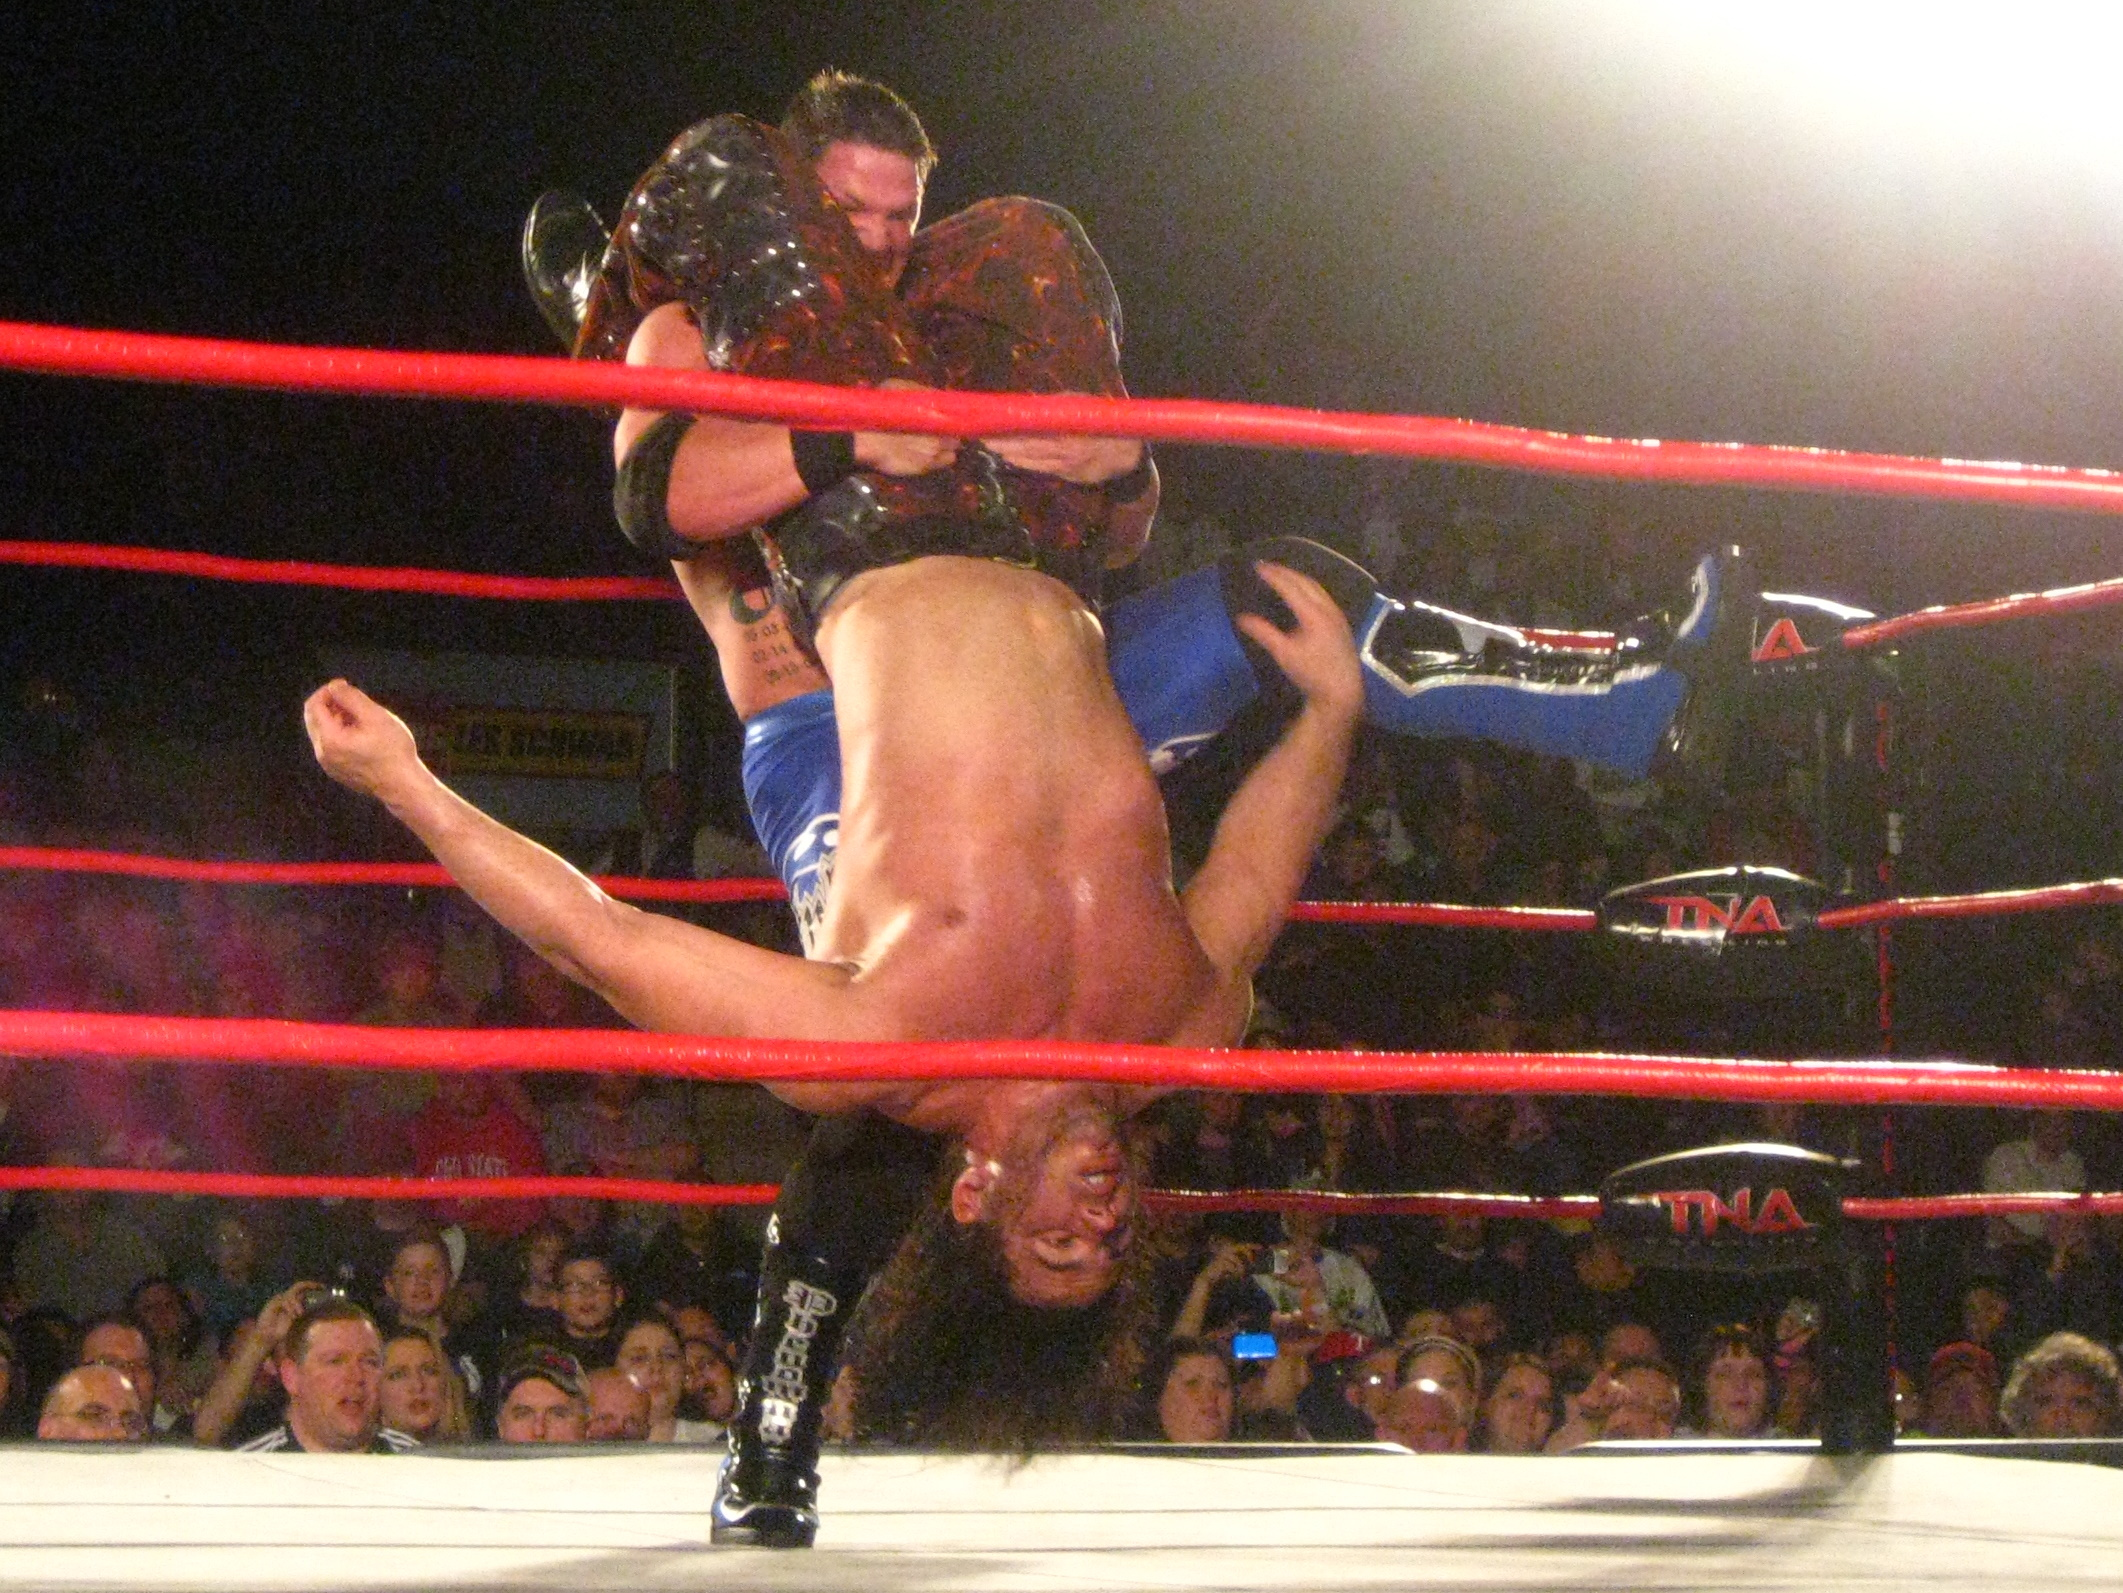 Styles preparing to perform the Styles Clash on Matt Hardy.